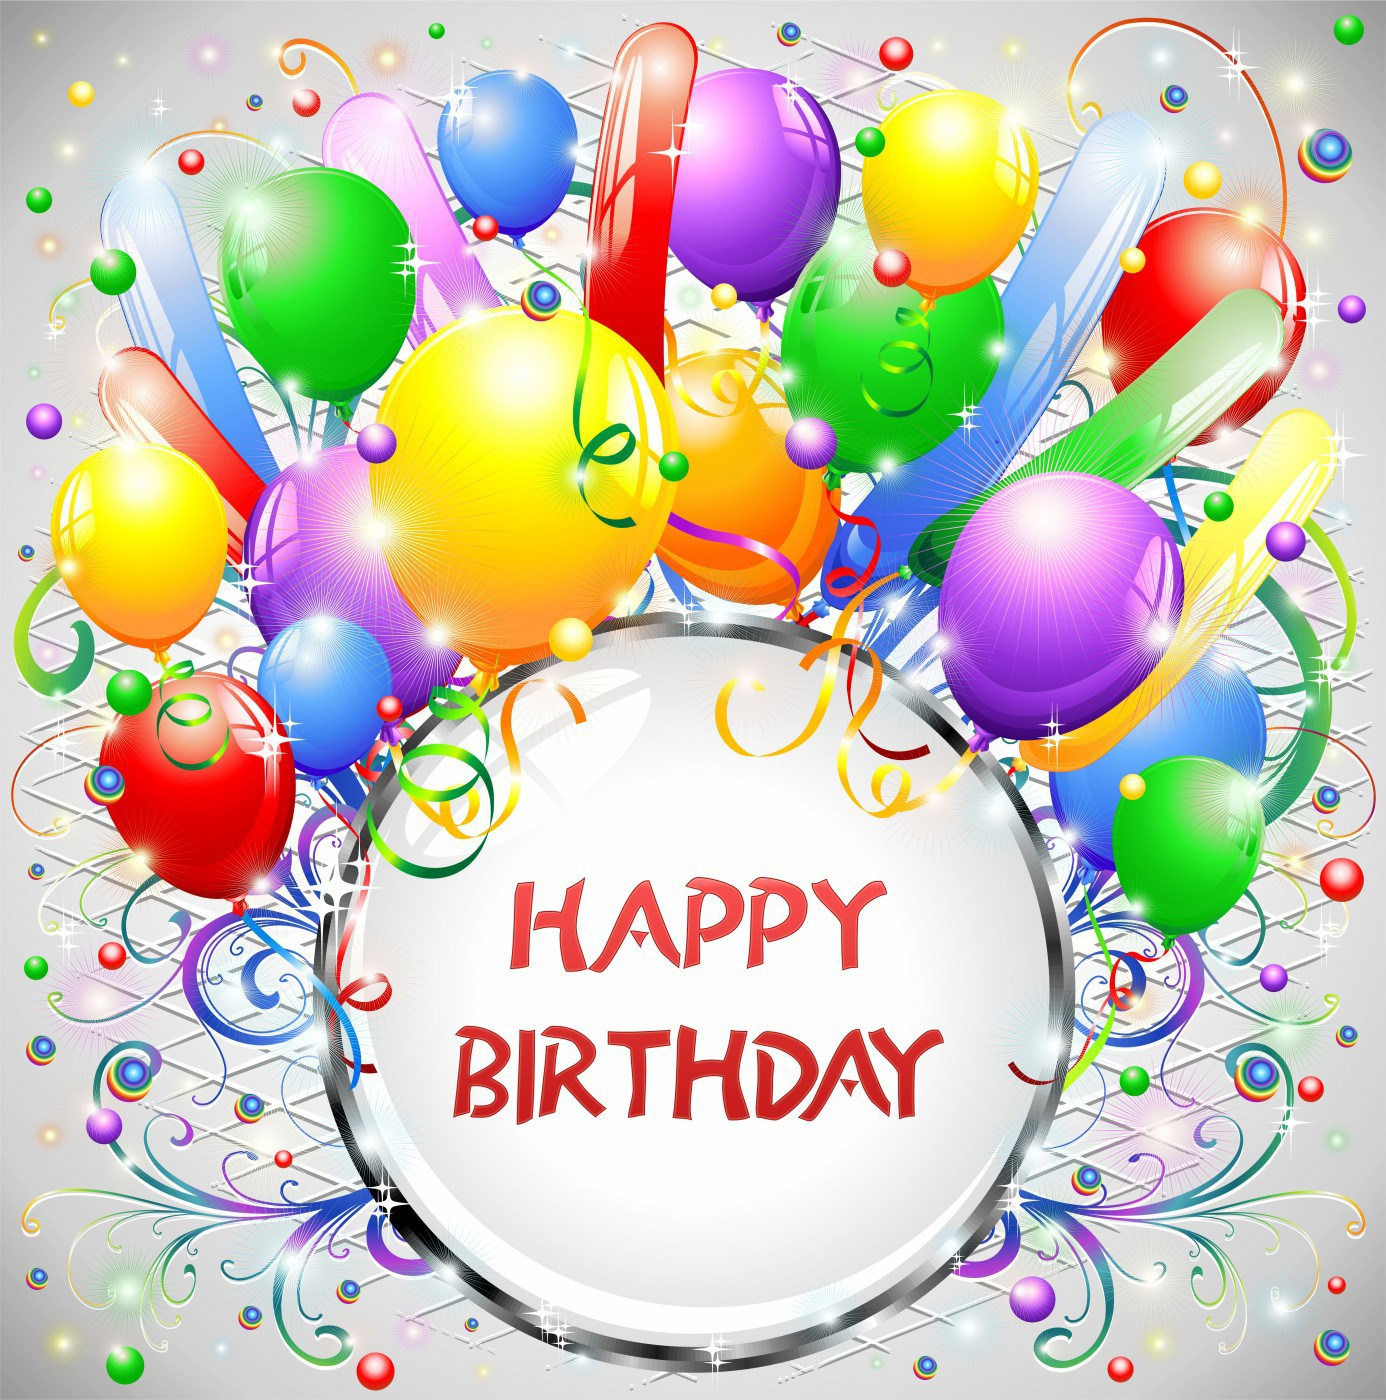 happy birthday wishes images download ; happy-birthday-images-9